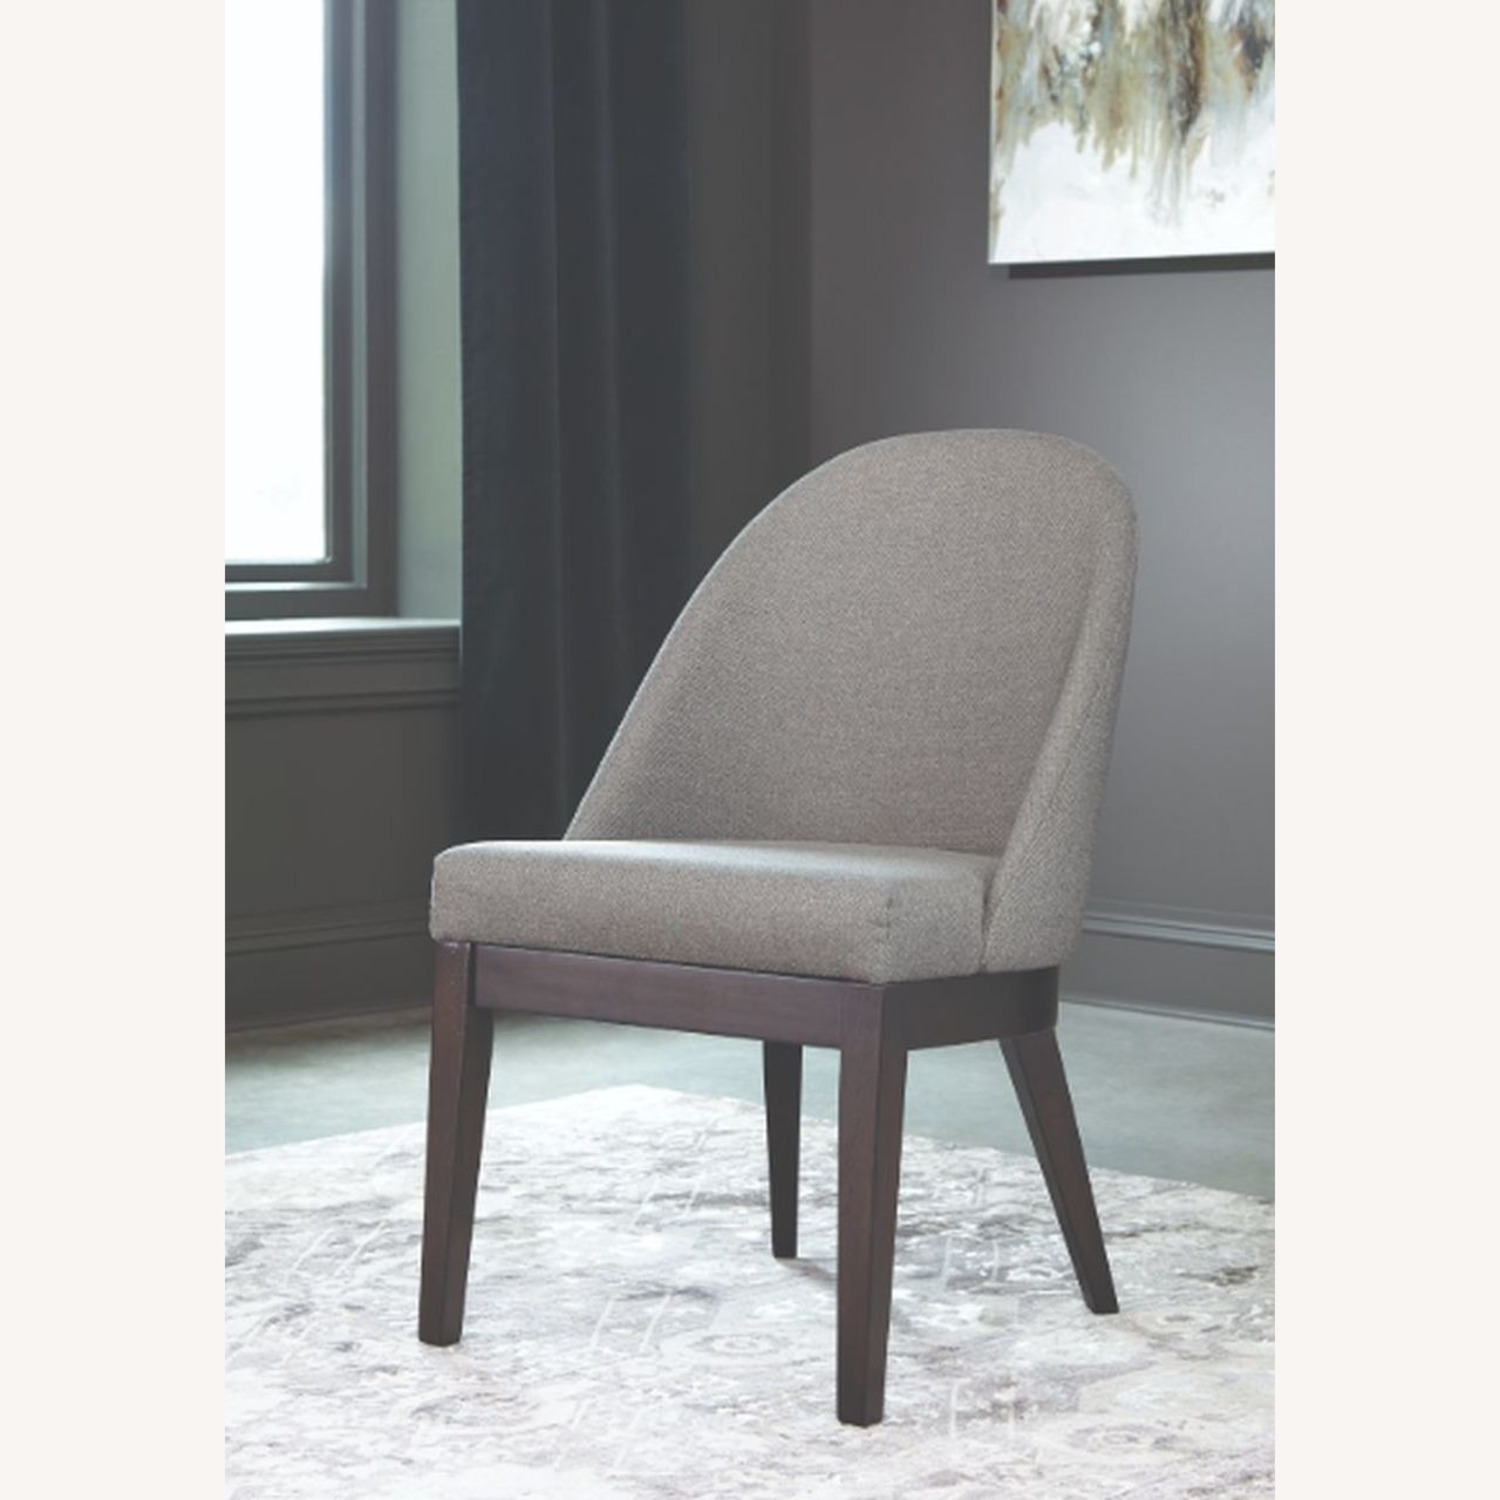 Glamorous Dining Chair In Light Grey Fabric - image-1